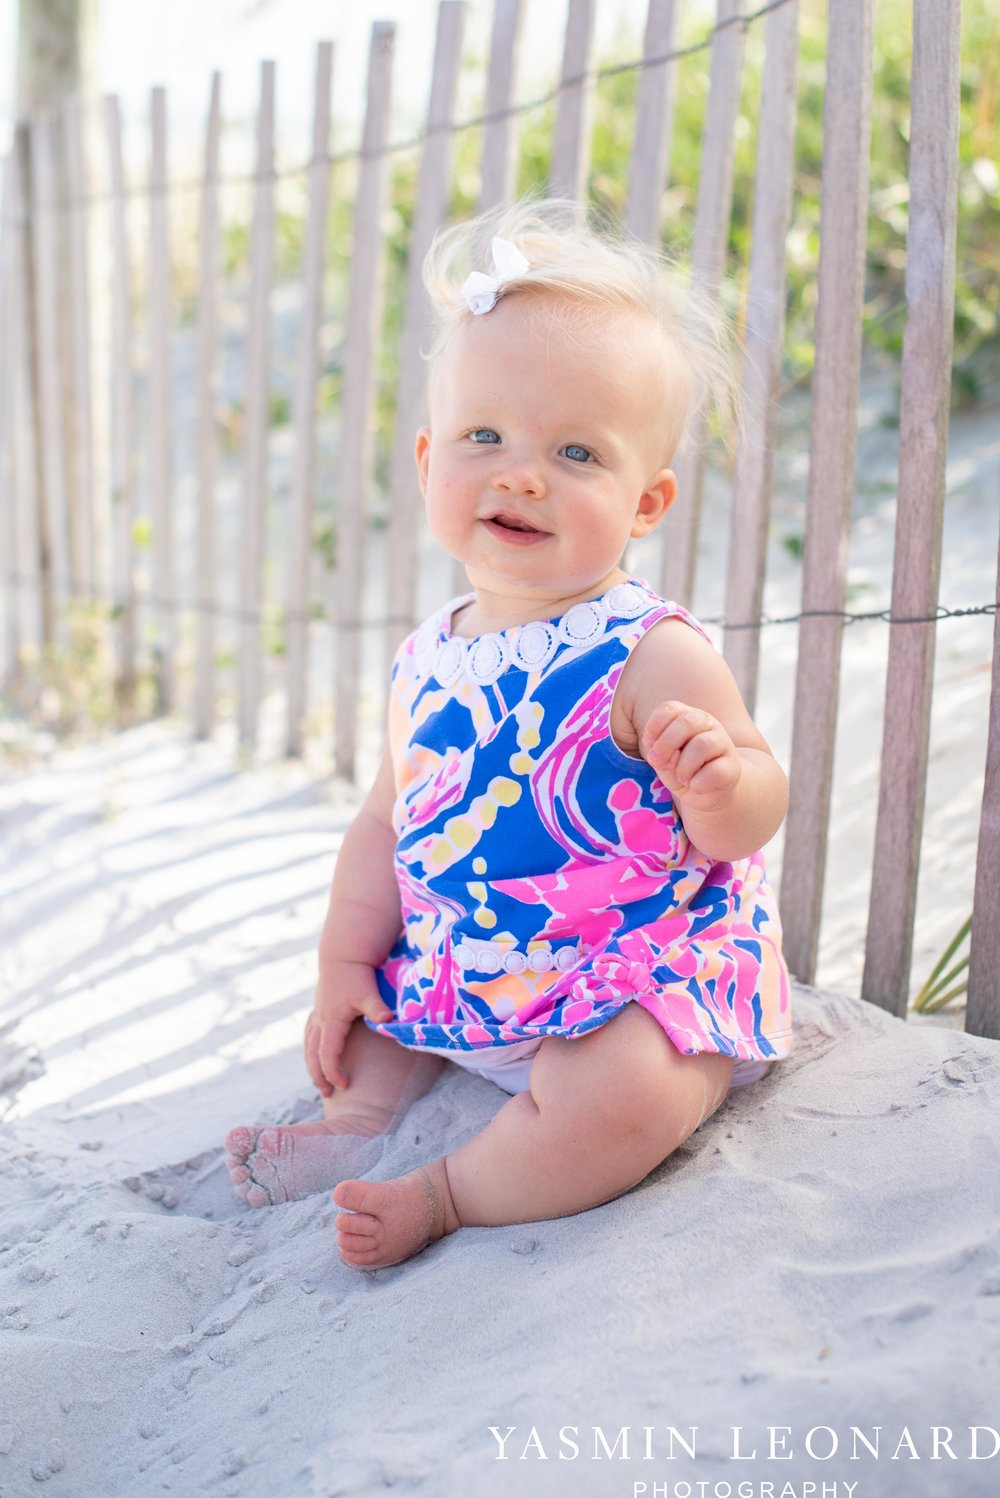 Wrightsville Beach Family Session - NC Photographer - NC Beach Photographer - NC Beach - NC Beach Photos - What to wear Beach - 6 Month Old Beach - Yasmin Leonard Photography-16.jpg